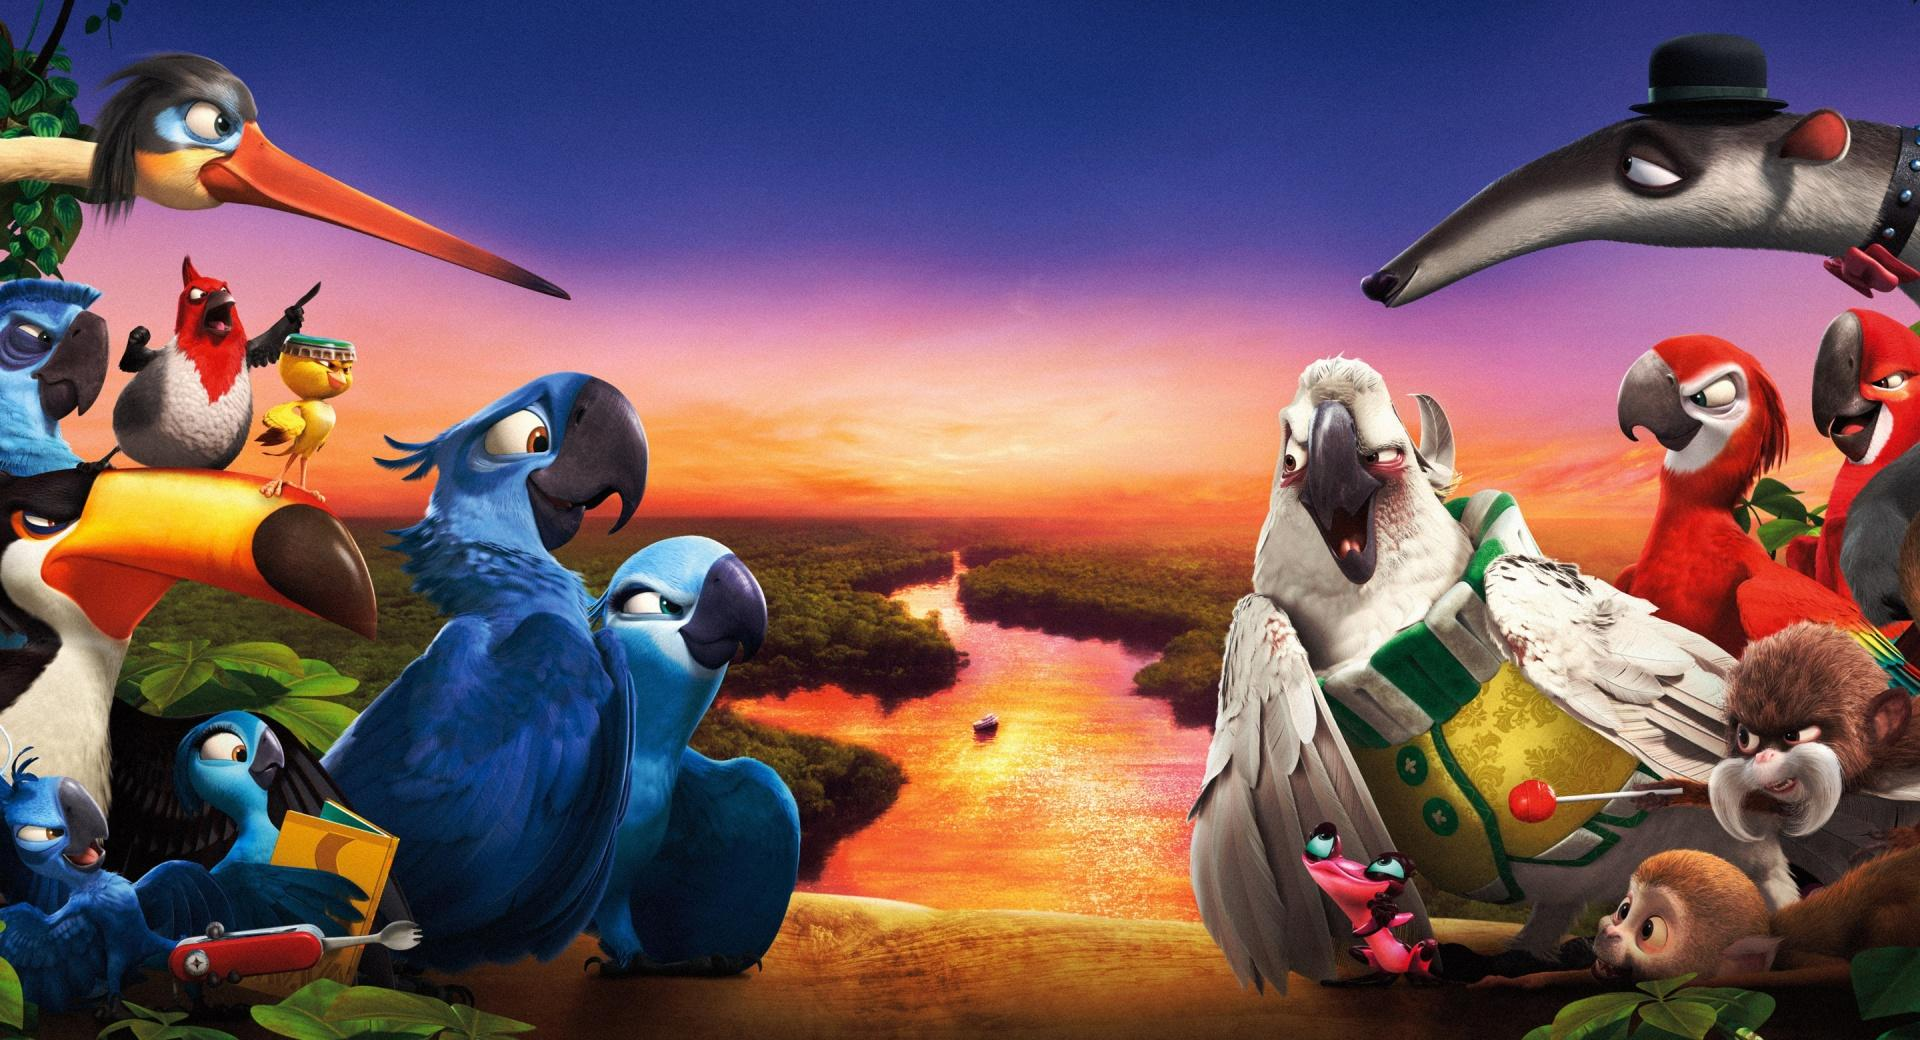 Rio 2 New 2014 at 320 x 480 iPhone size wallpapers HD quality